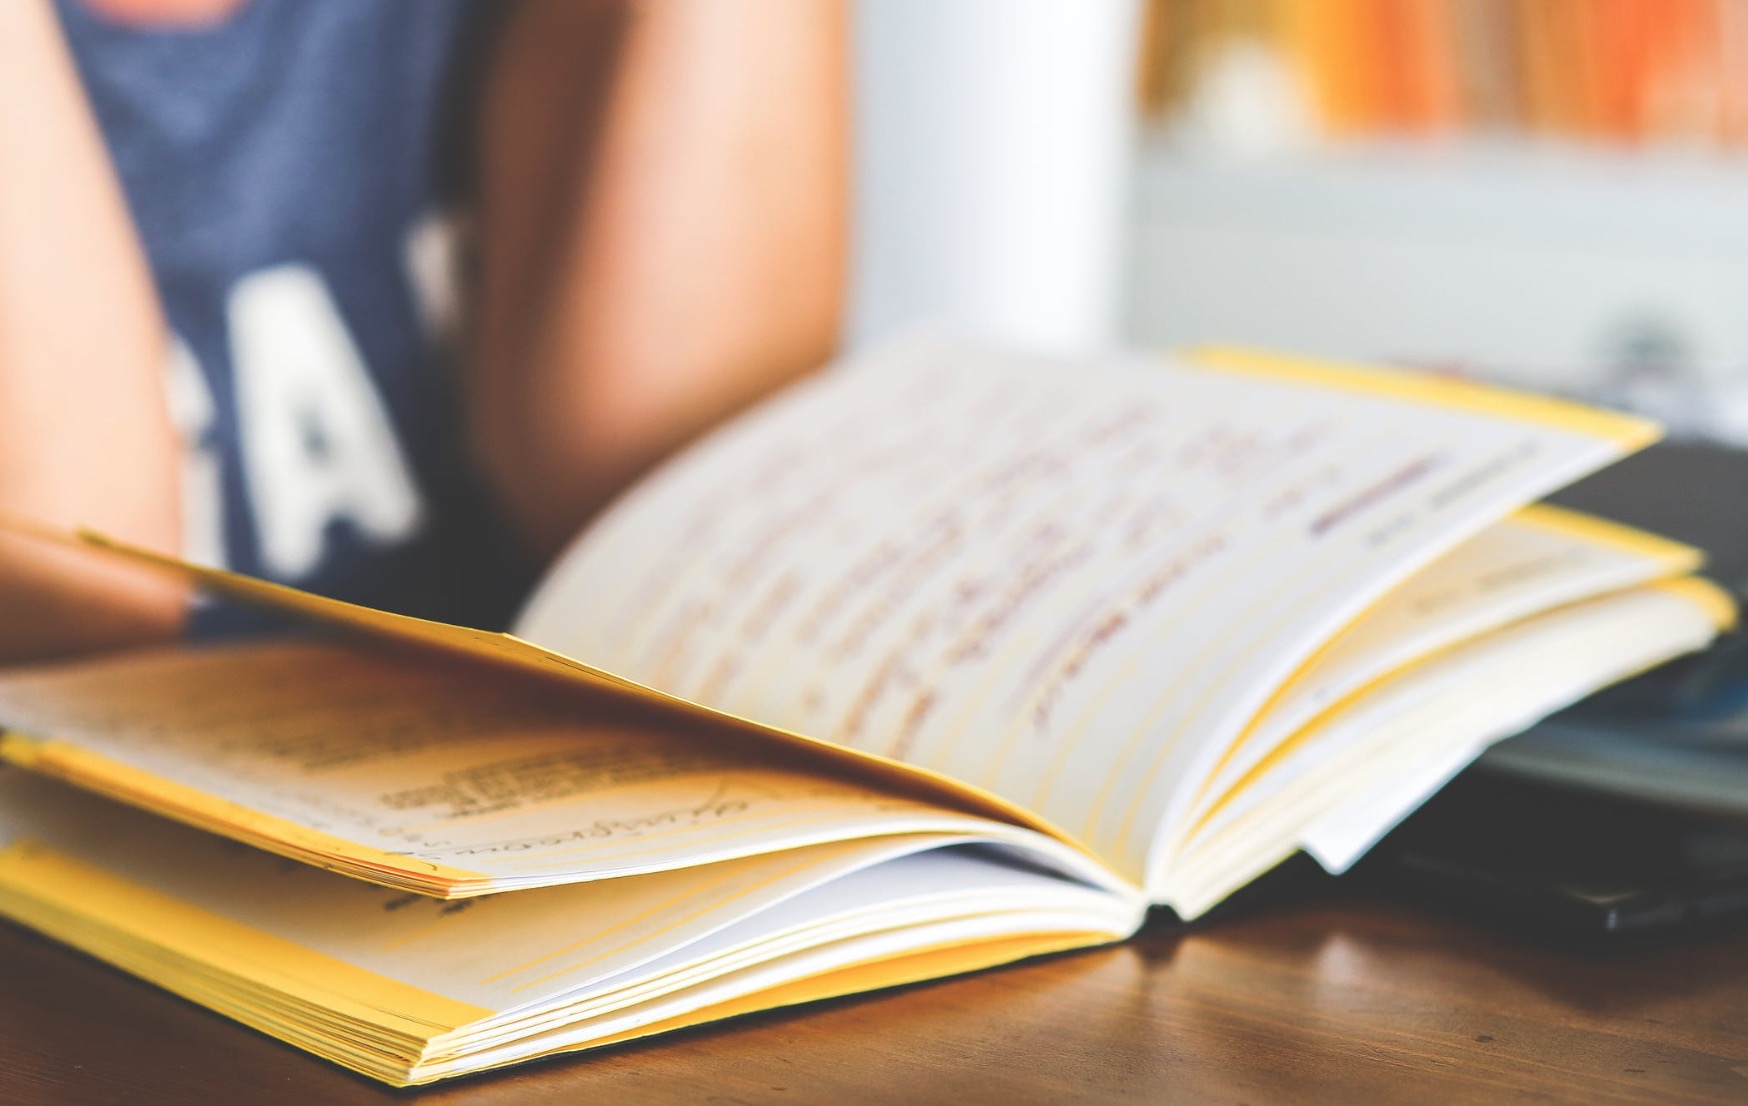 The Remediated Student – WHAT TO EXPECT [PREMIUM]